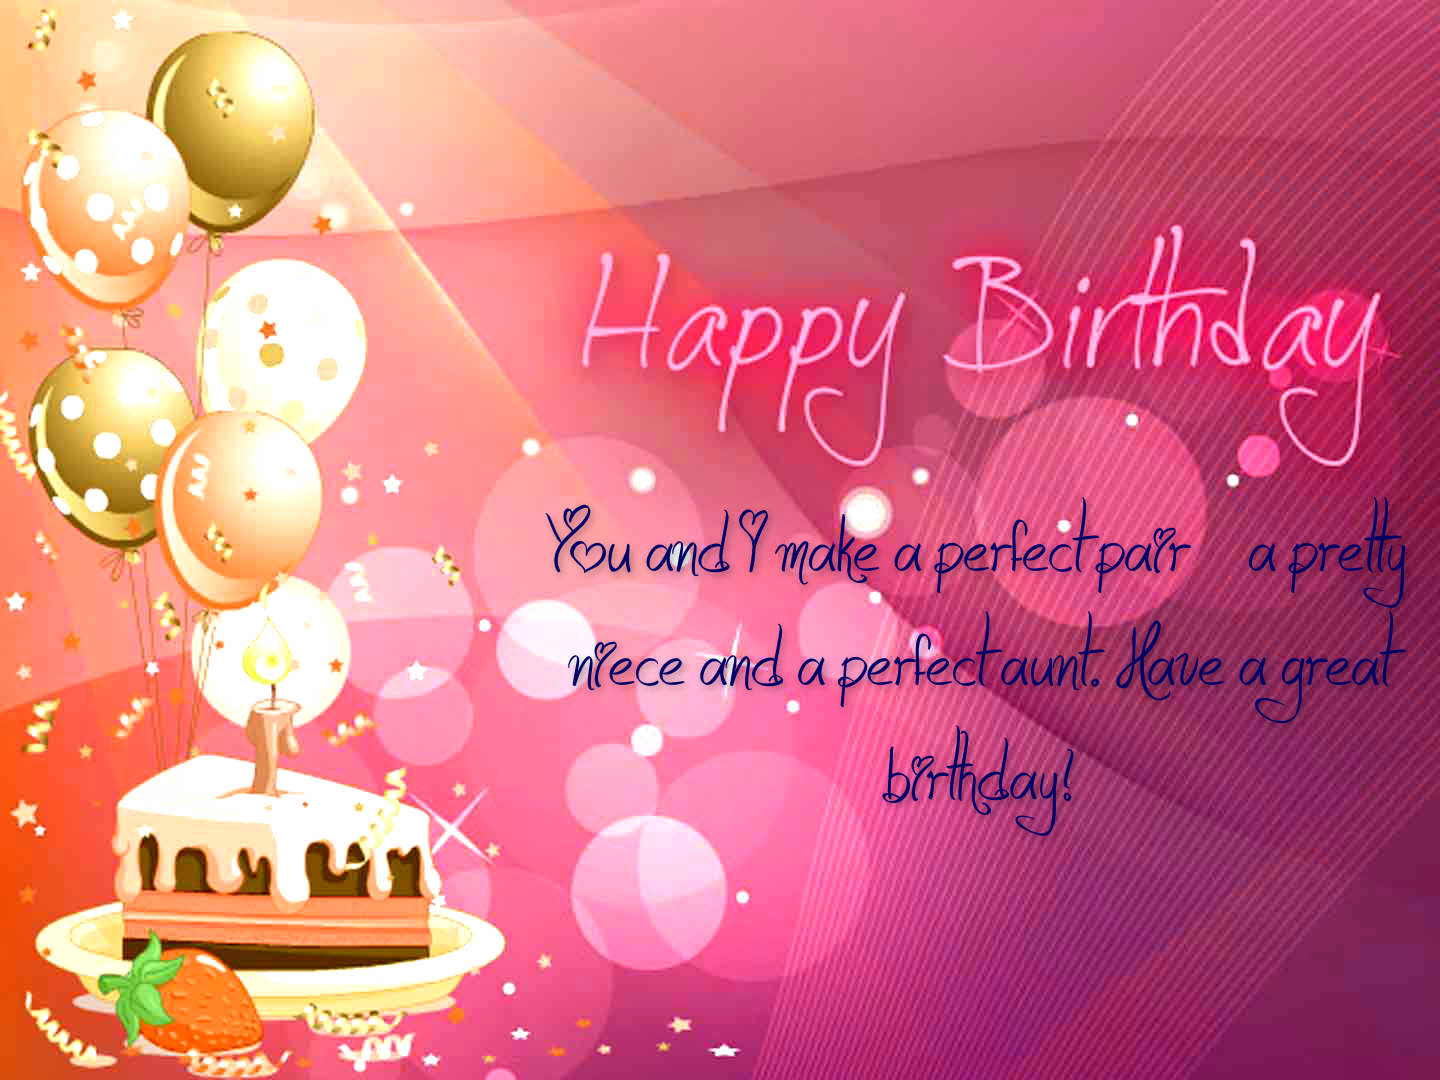 birthday message for aunt tagalog ; Happy-Birthday-Aunt-4